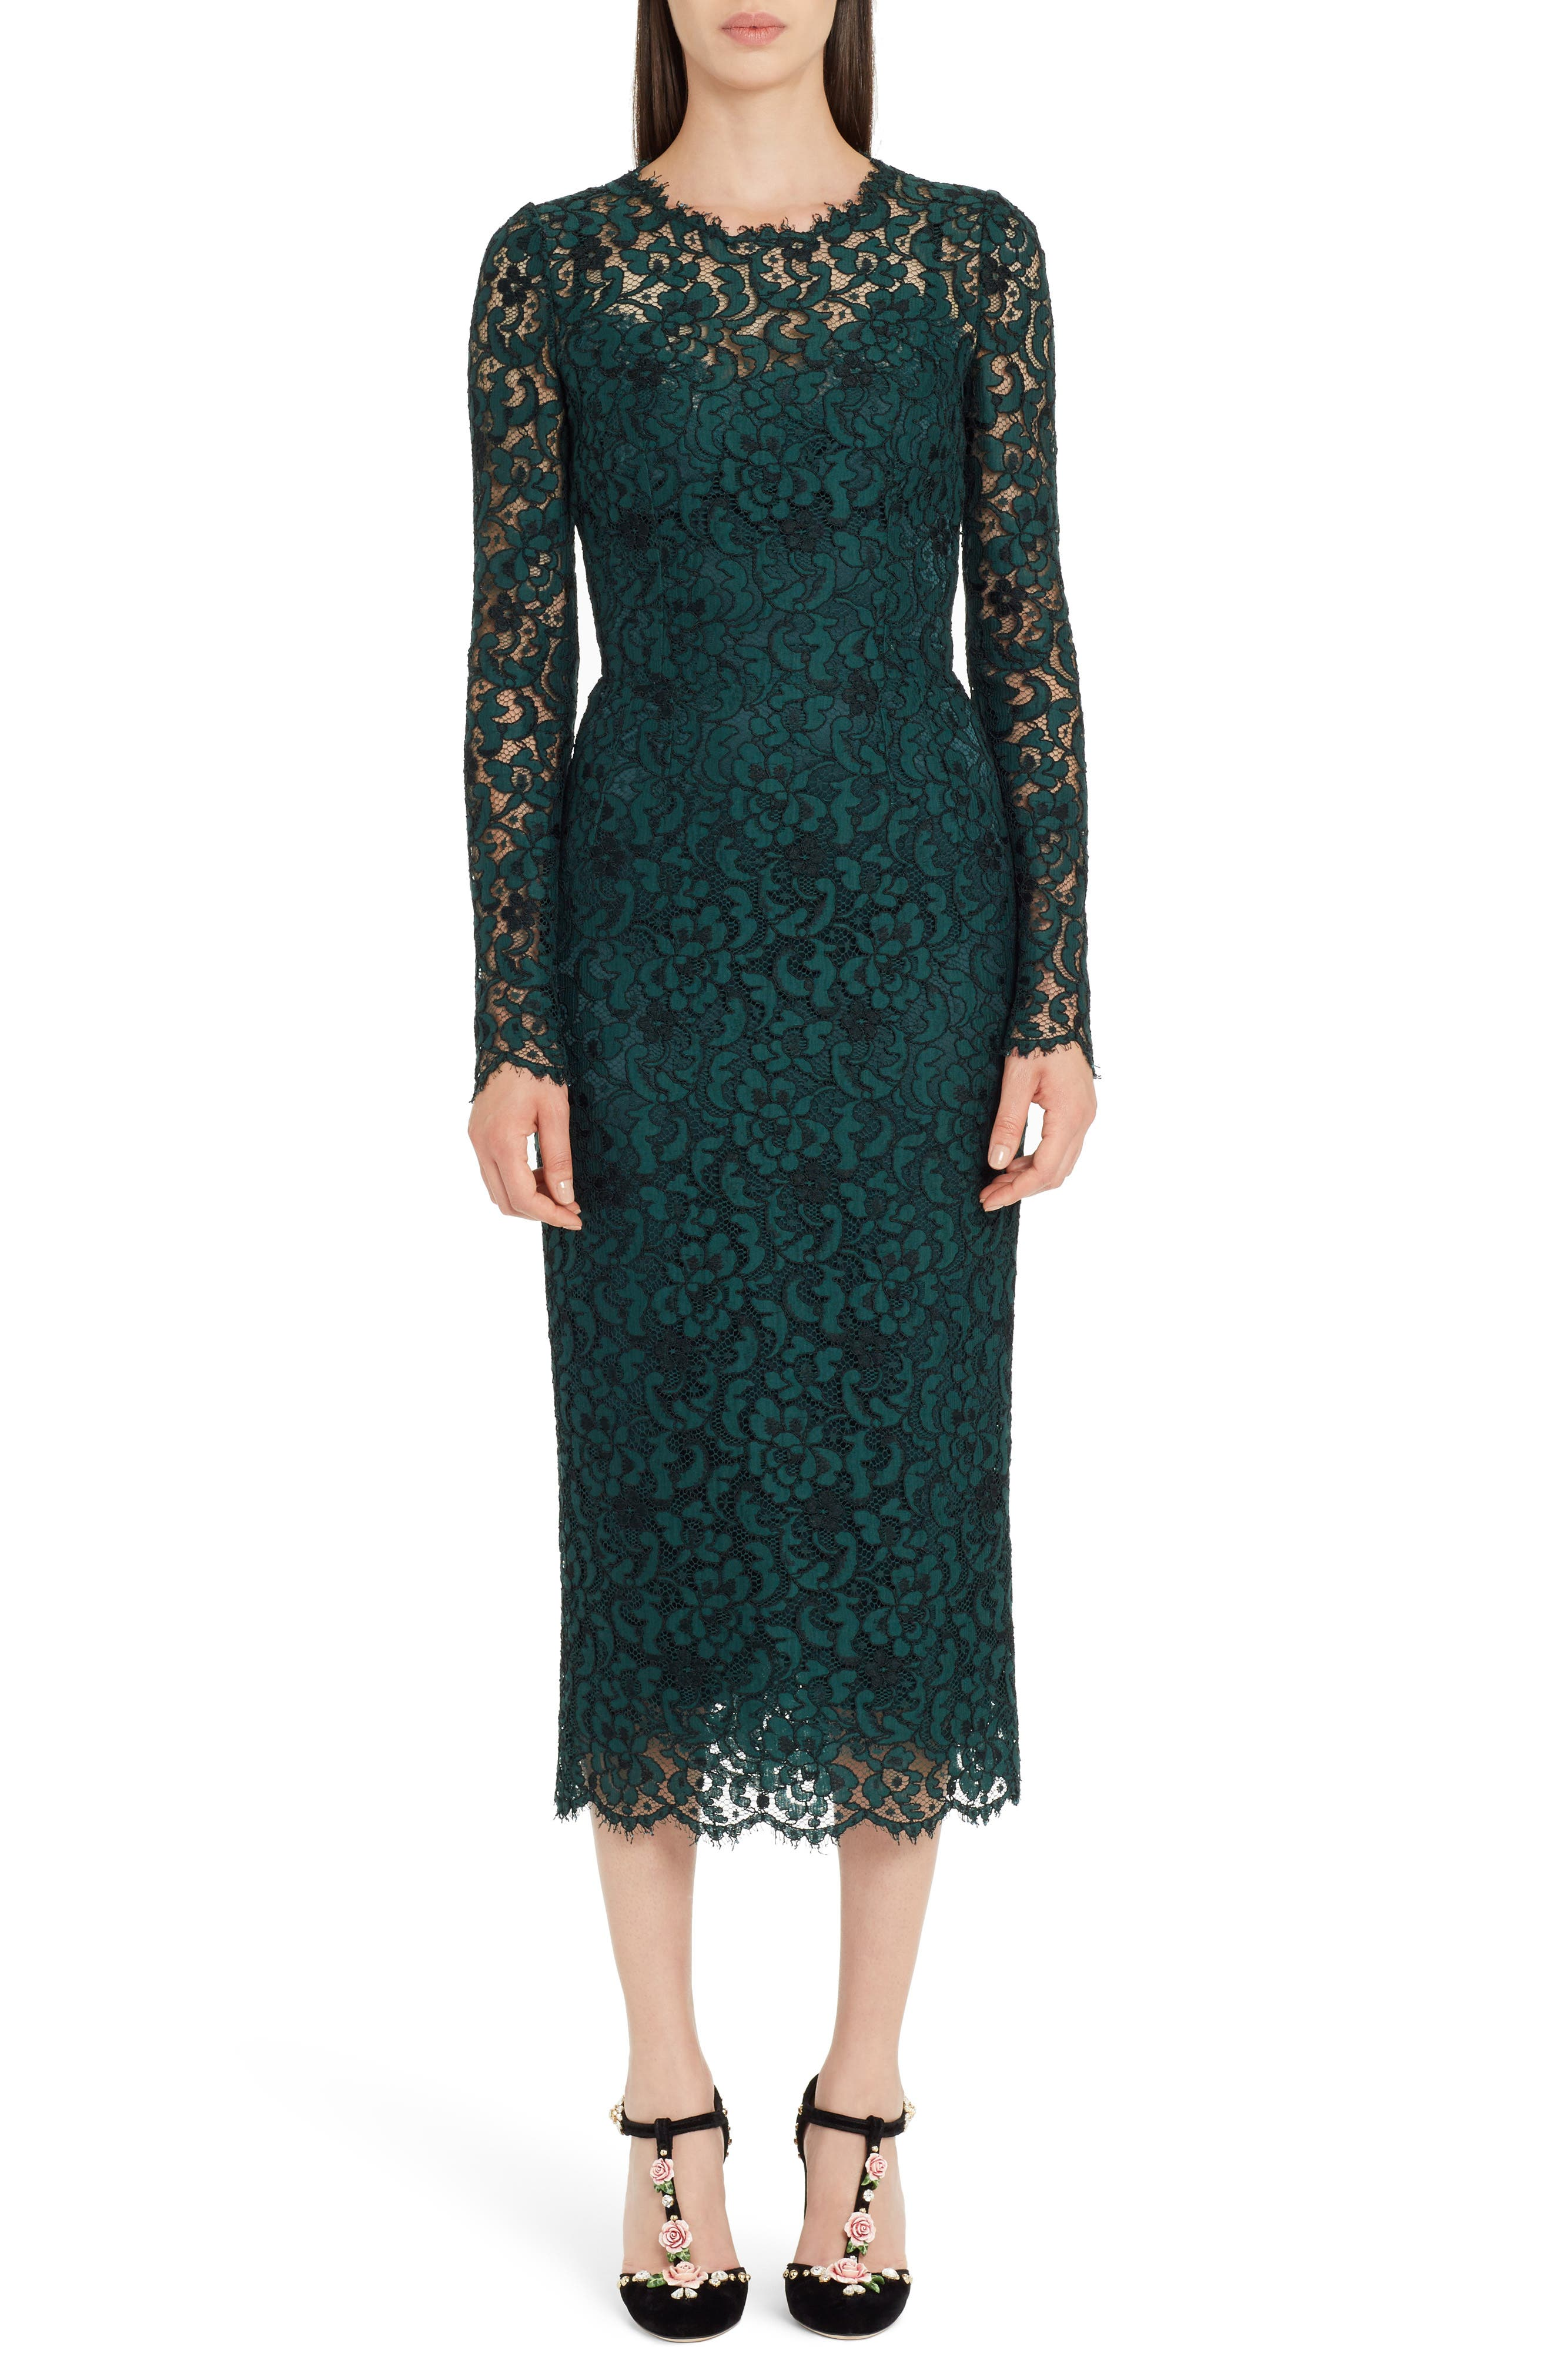 Dolce and Gabbana Dresses On Sale